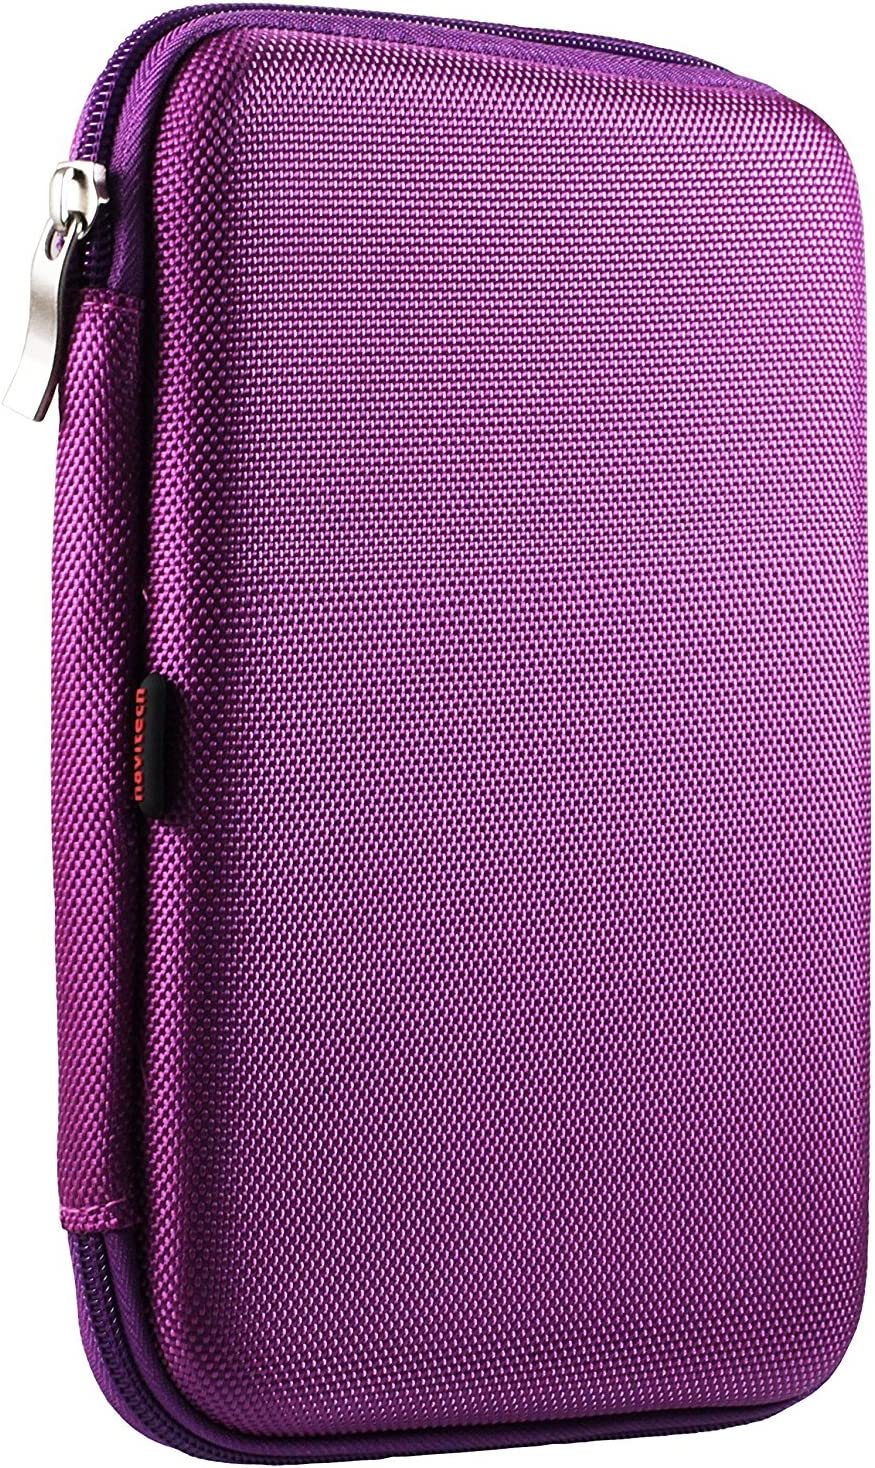 Navitech Purple Hard Protective EVA Case Cover Compatible with The Acer ICONIA B1-790-K017 7-Inch Tablet